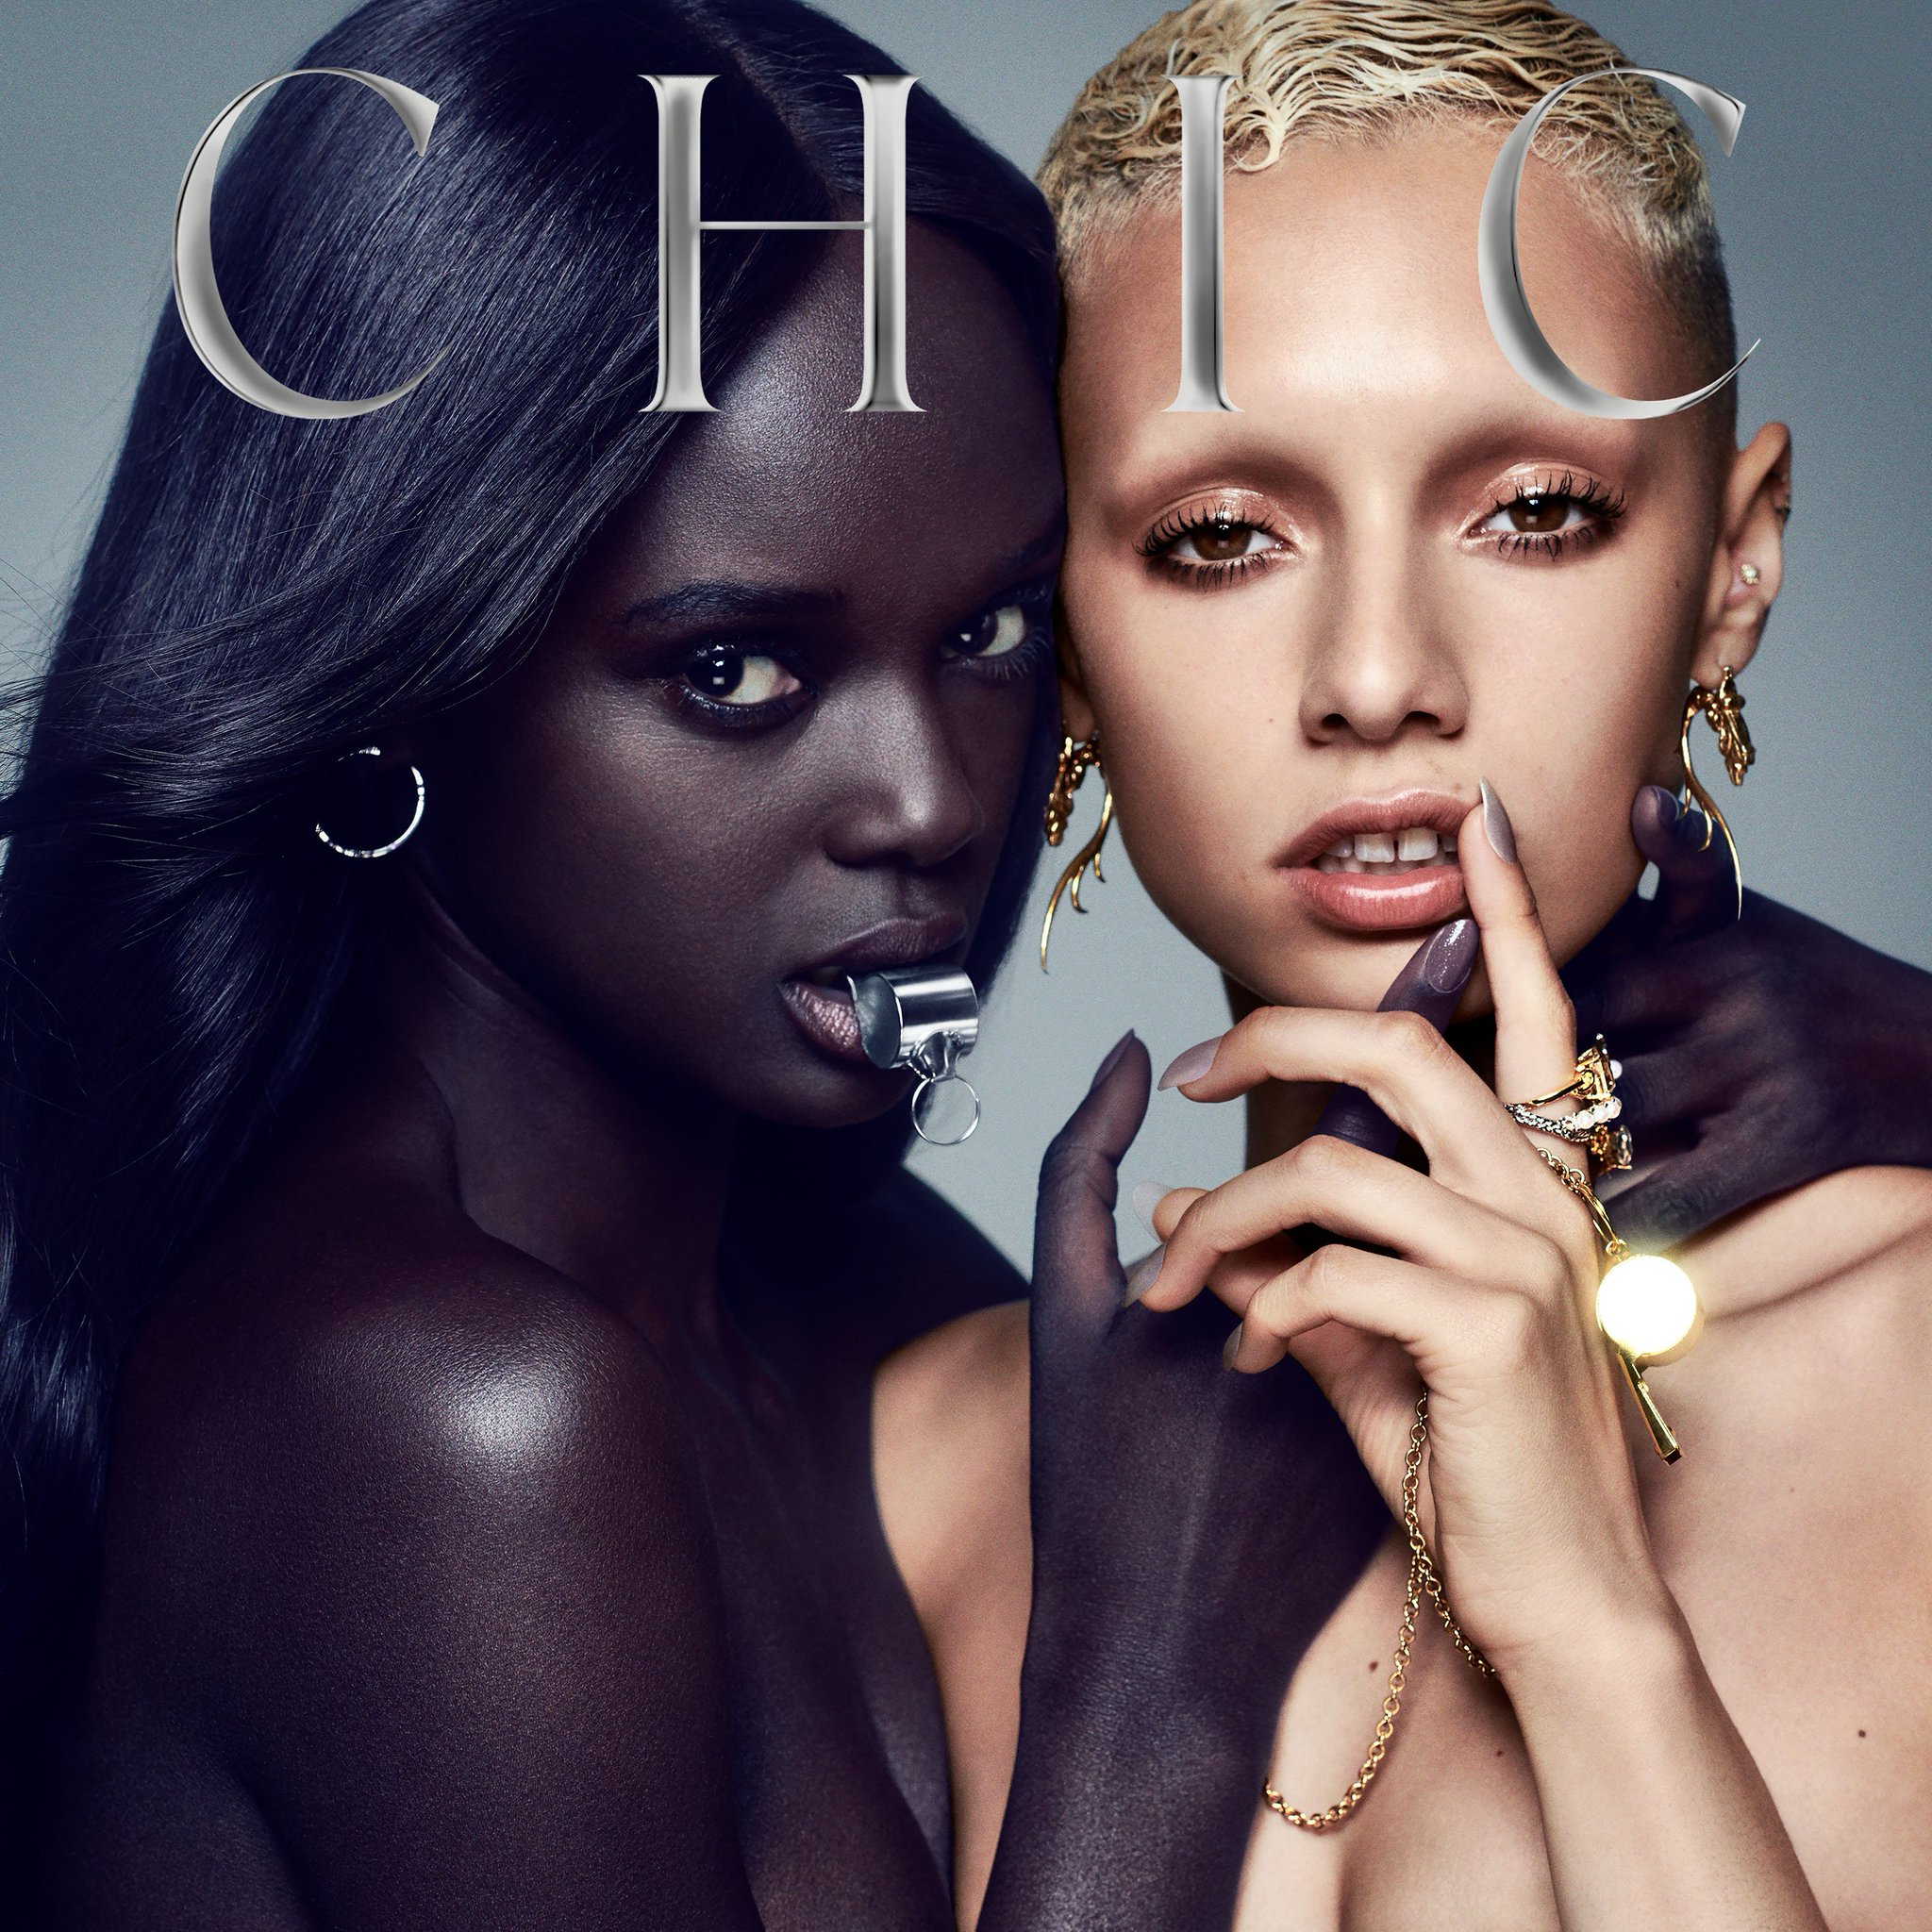 Chic - It's About Time Album Cover